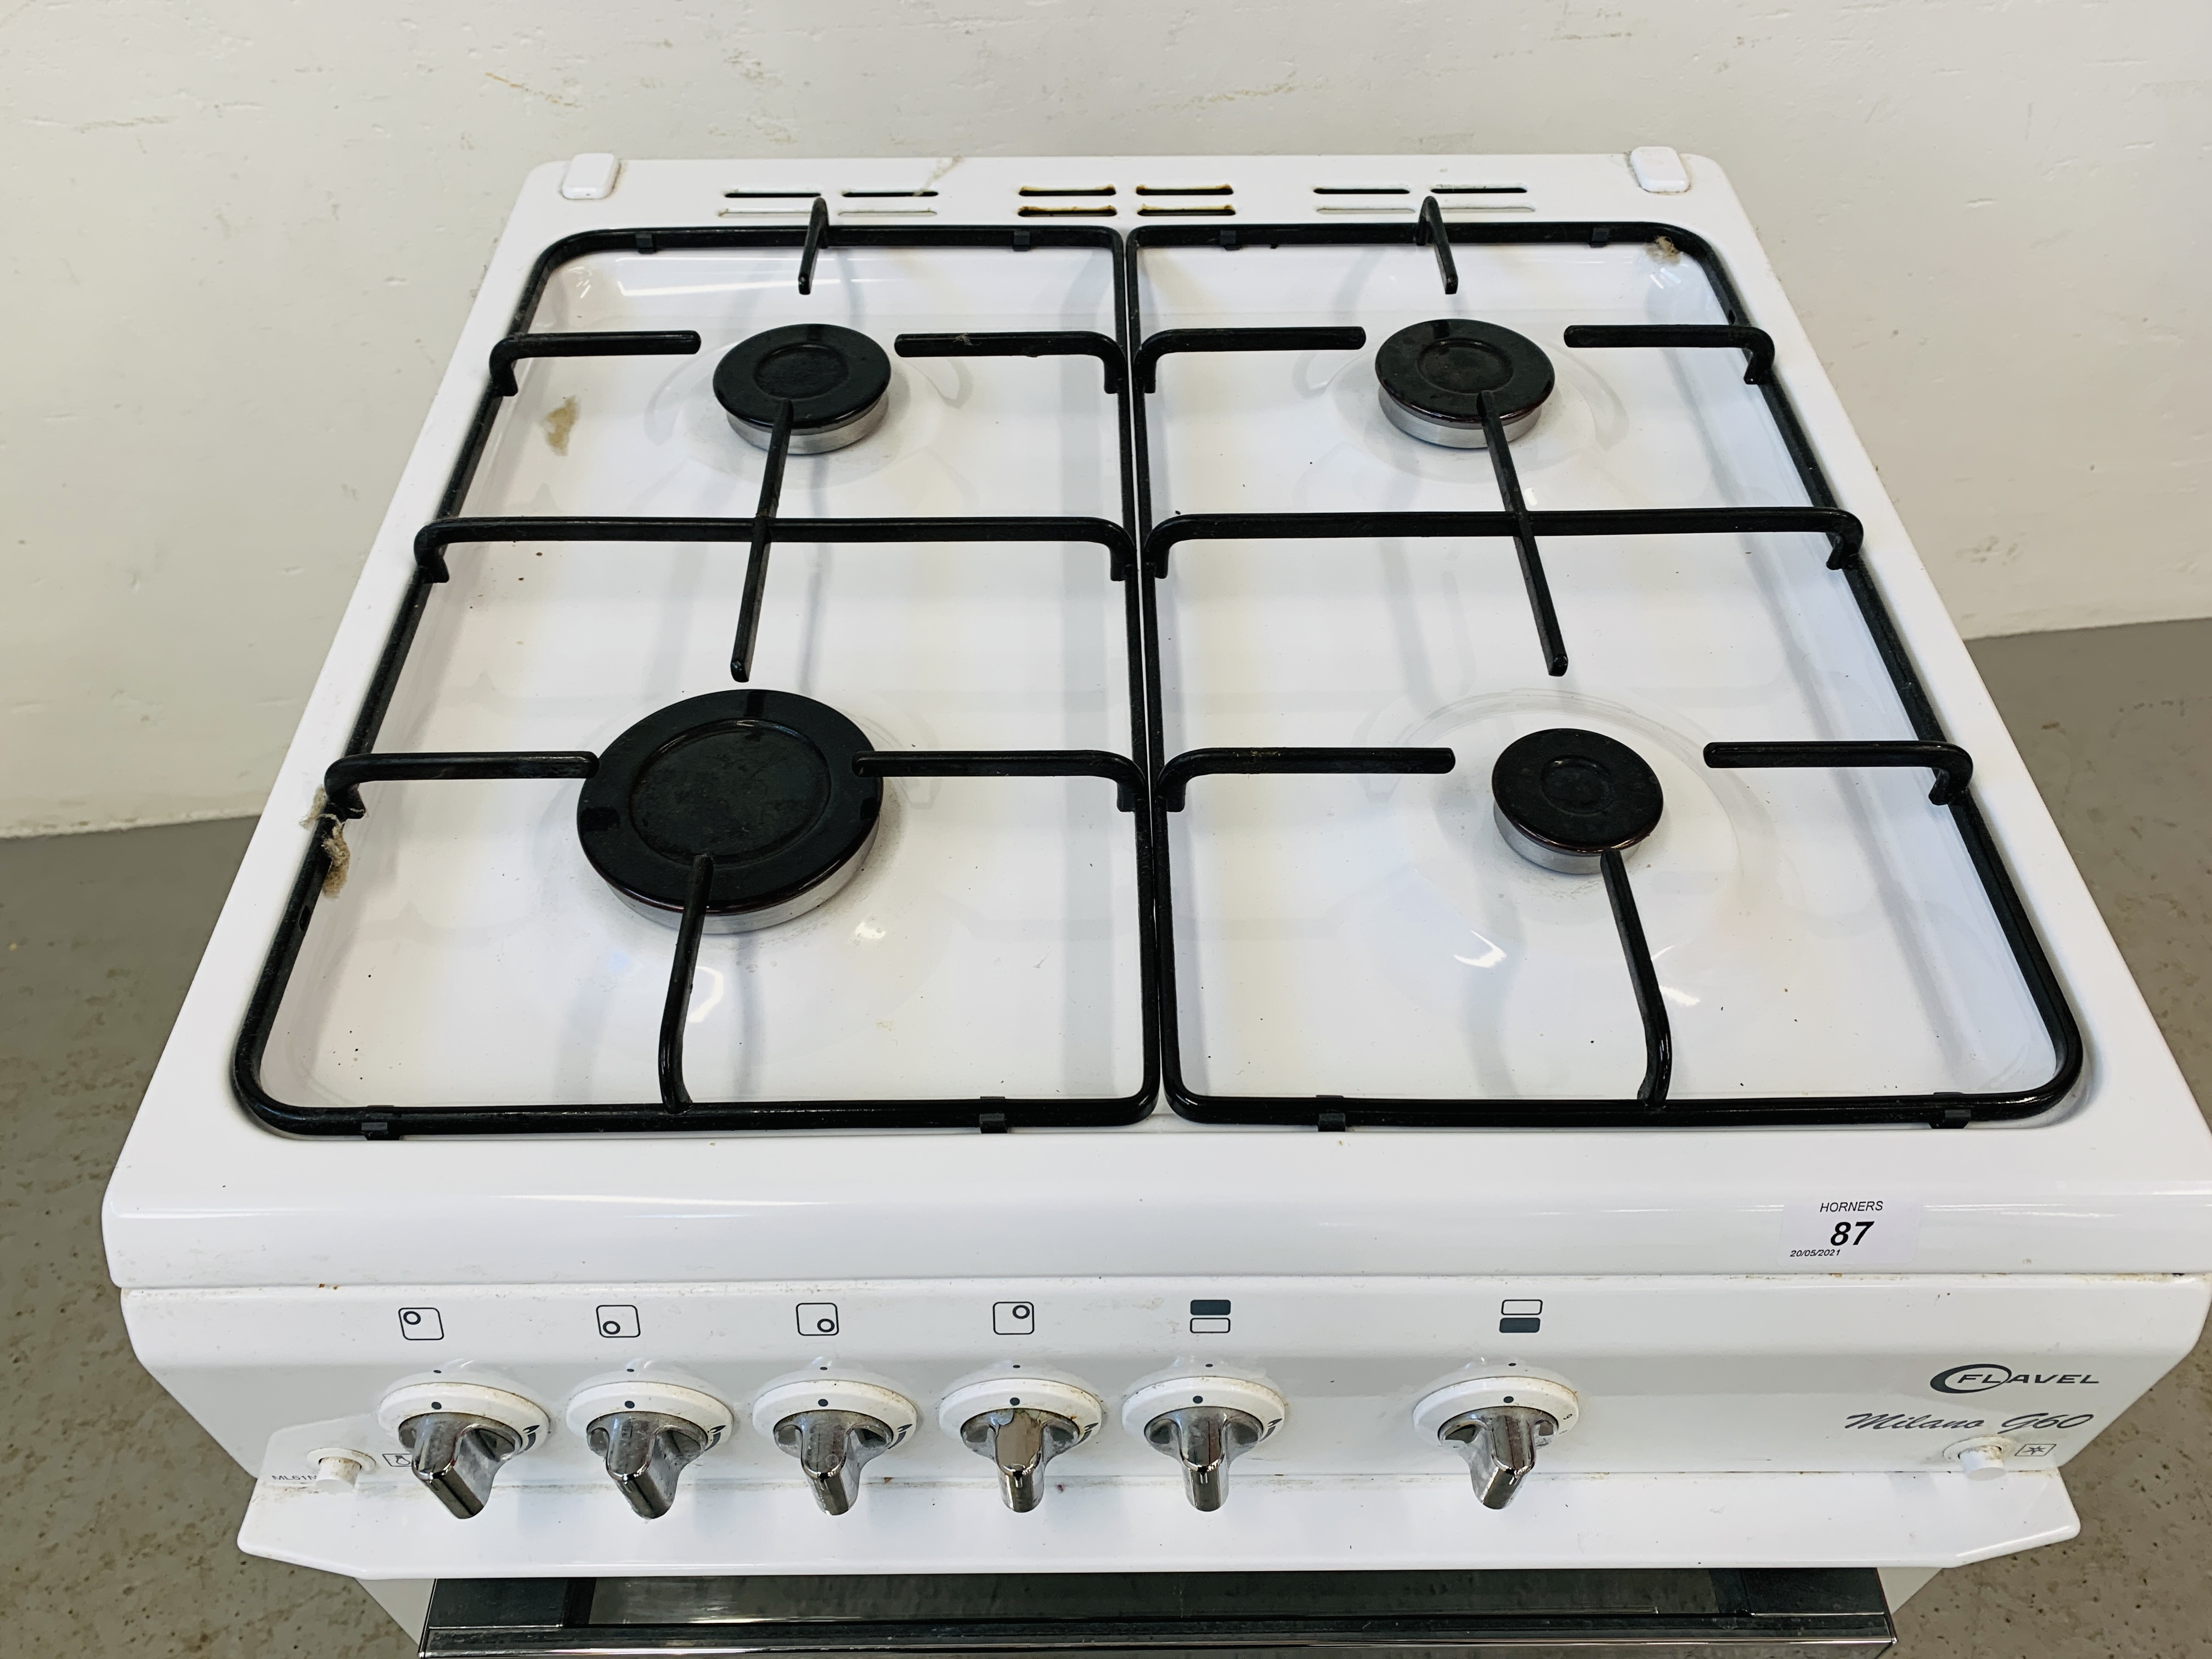 A FLAVEL MILANO G60 DOUBLE OVEN MAINS GAS COOKER - TRADE ONLY - Image 4 of 9